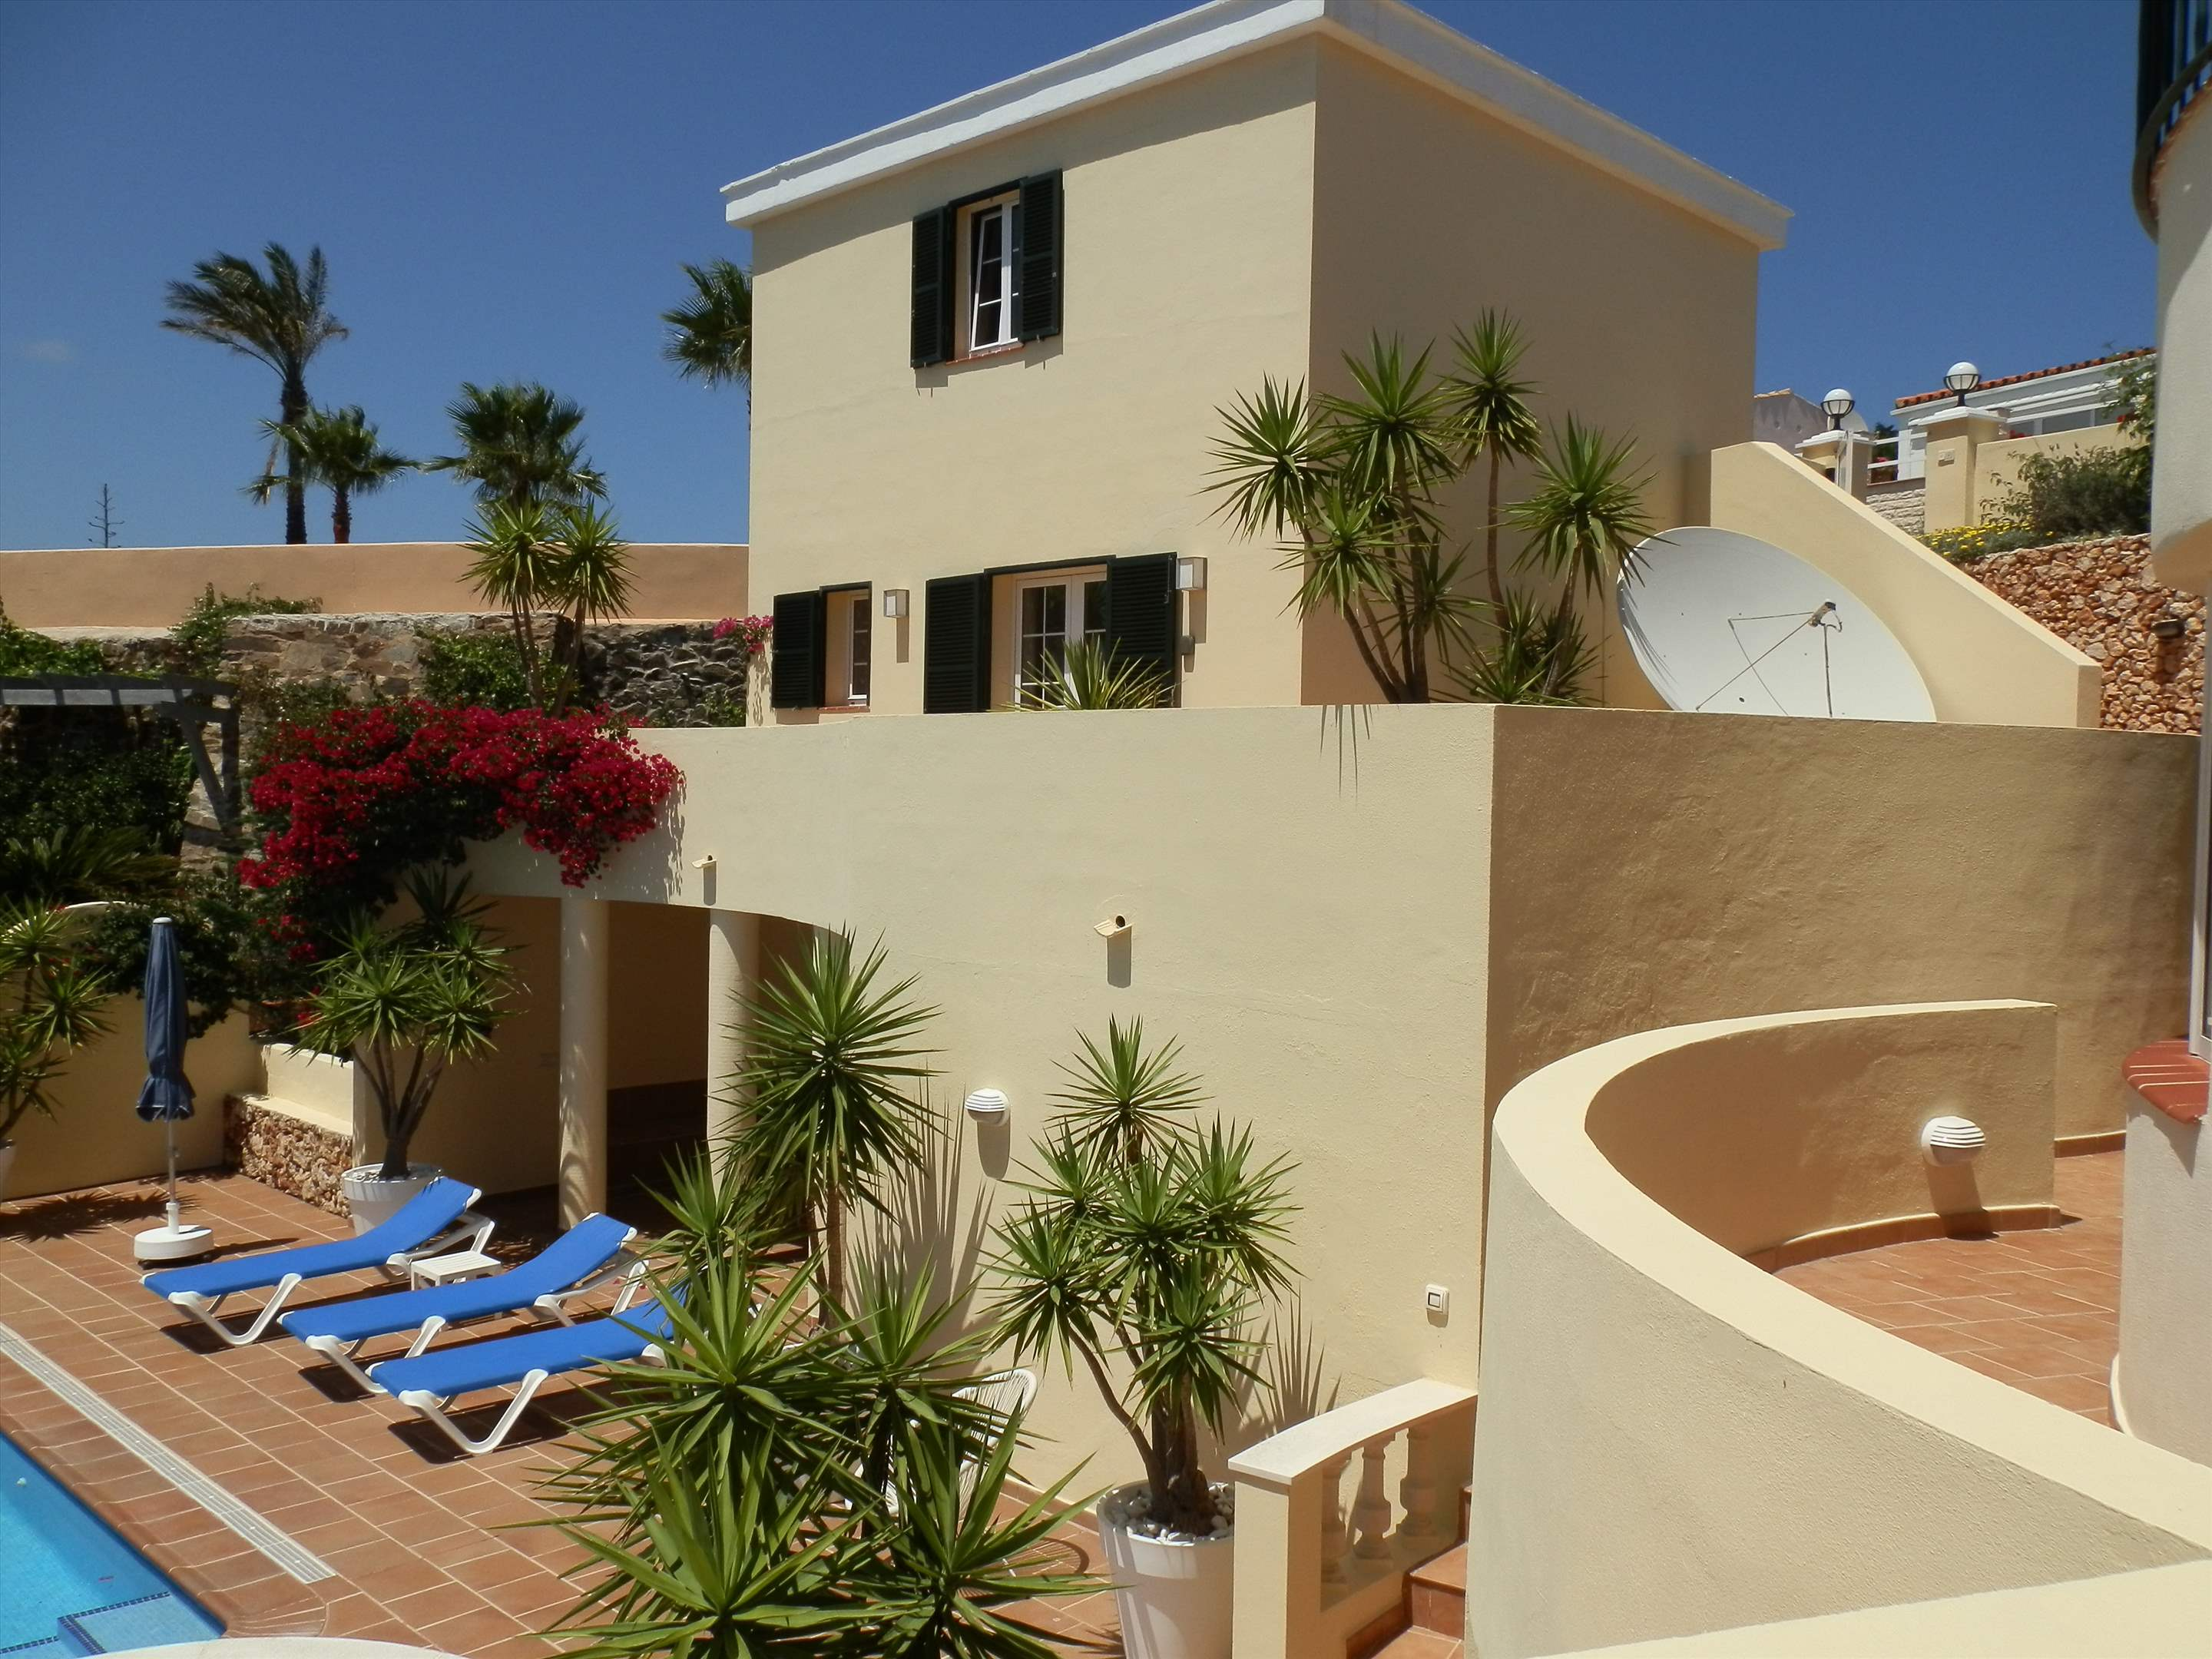 Son De Mar, 5 bedroom villa in Mahon, San Luis & South East, Menorca Photo #2